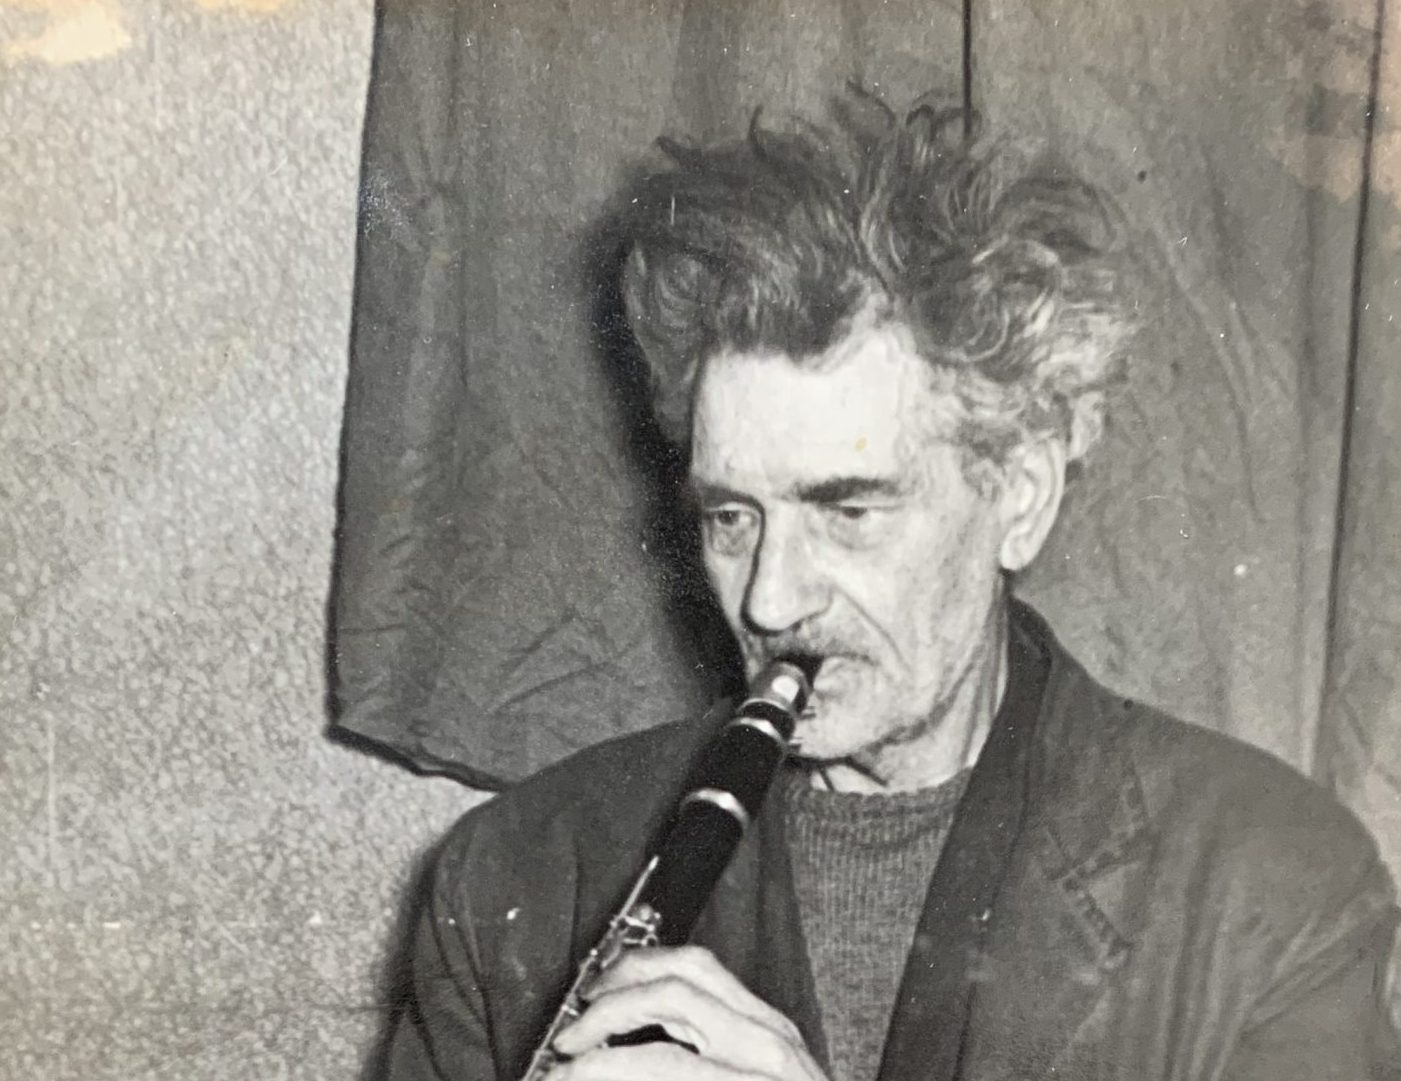 PHOTOGRAPHIC PORTRAIT OF AUSTIN OSMAN SPARE